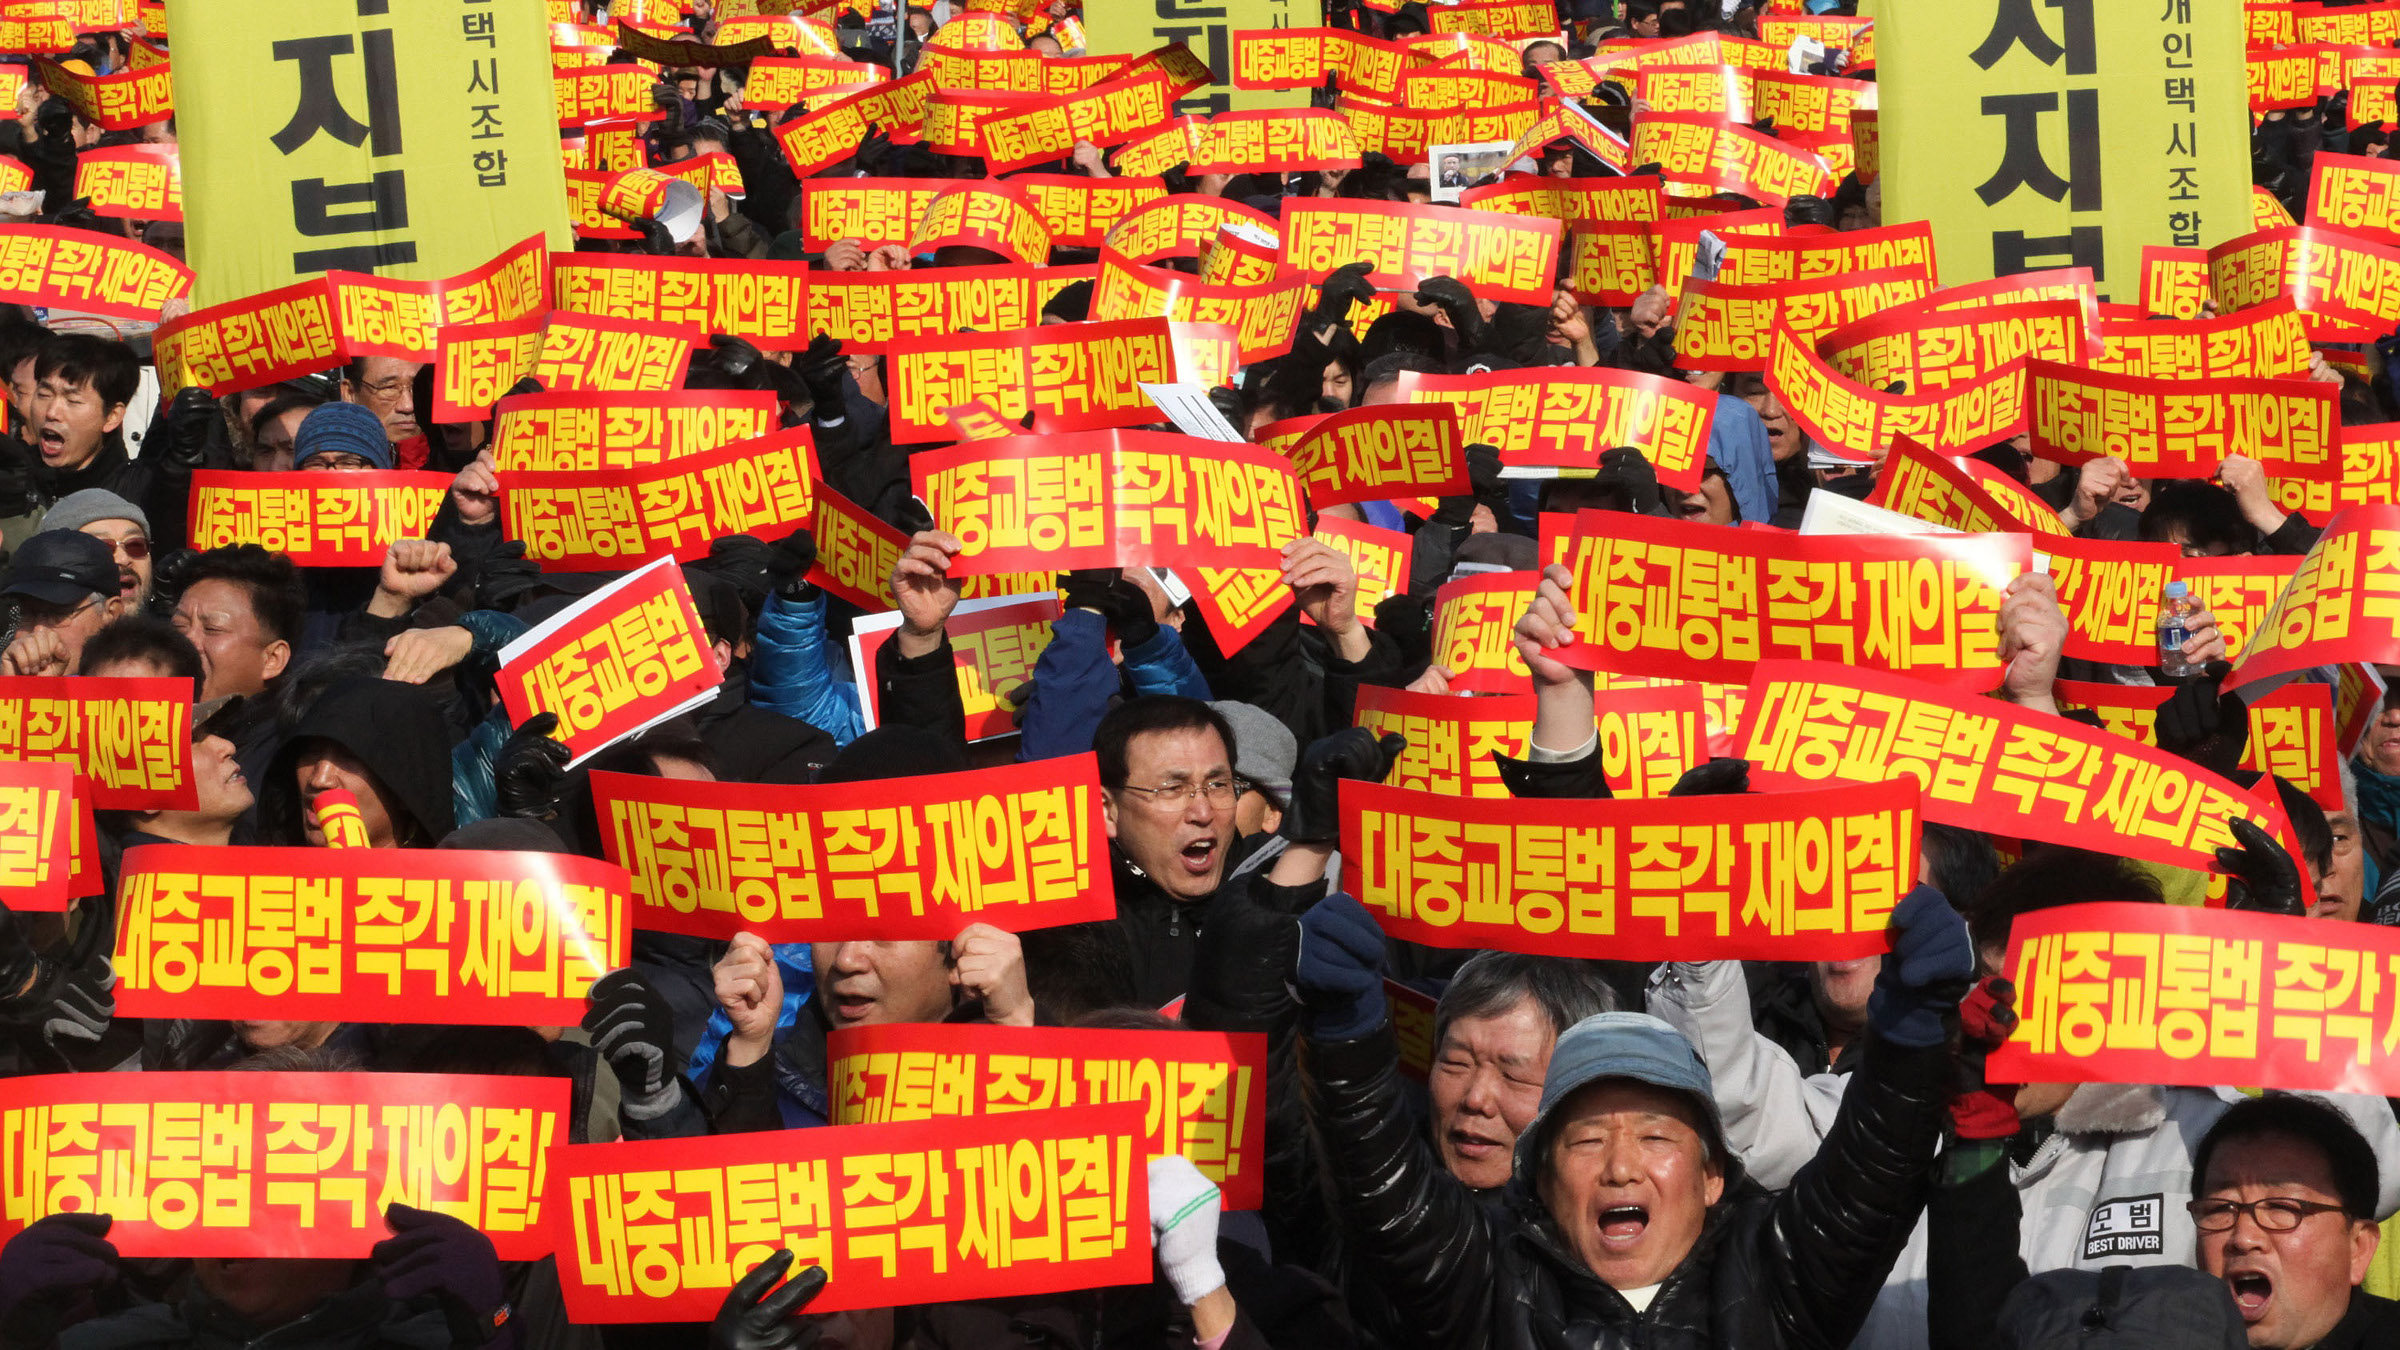 "About 20,000 taxi drivers shout slogans during a rally against government policy near the National Assembly in Seoul, South Korea, Wednesday, Feb. 20, 2013. They launched one-day strike on Wednesday to demand the National Assembly to revive a vetoed taxi bill that would have allowed taxies to be recognized as public transportation near the National Assembly. The letters read "" Taxies to be recognized as public transportation""."